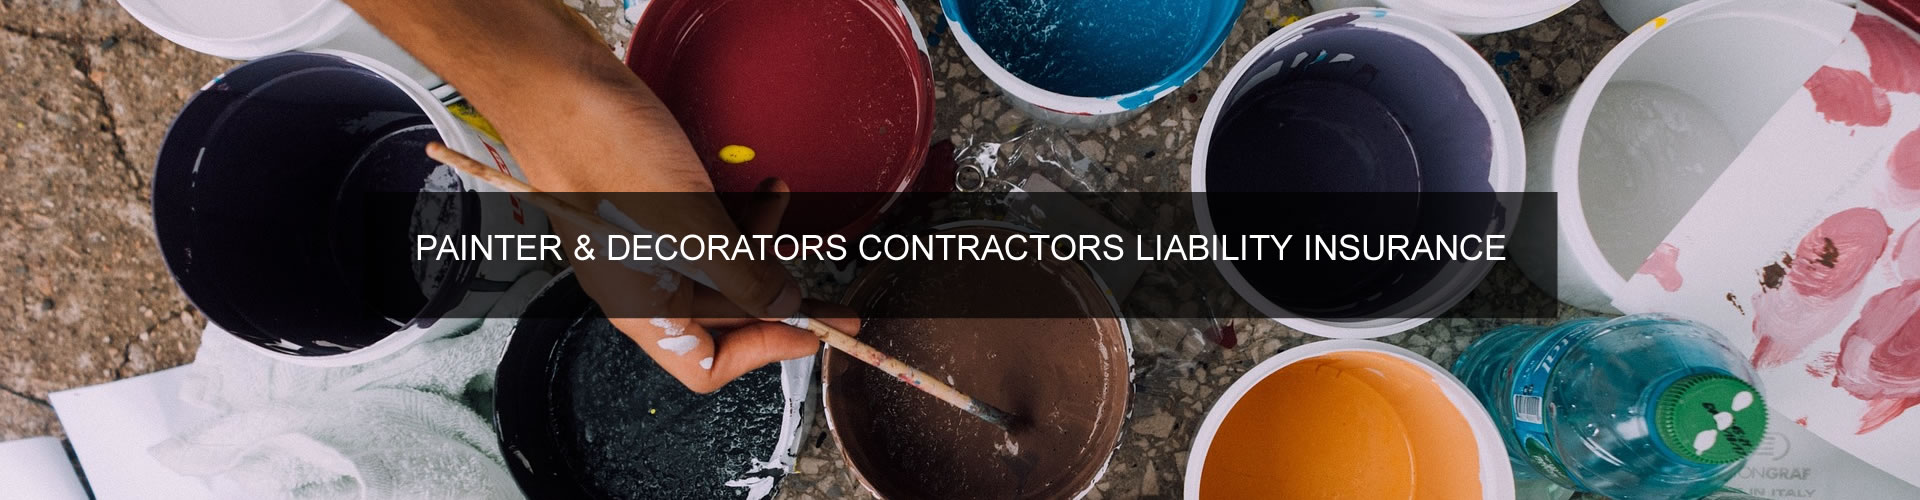 Painter and Decorators Contractors Liability